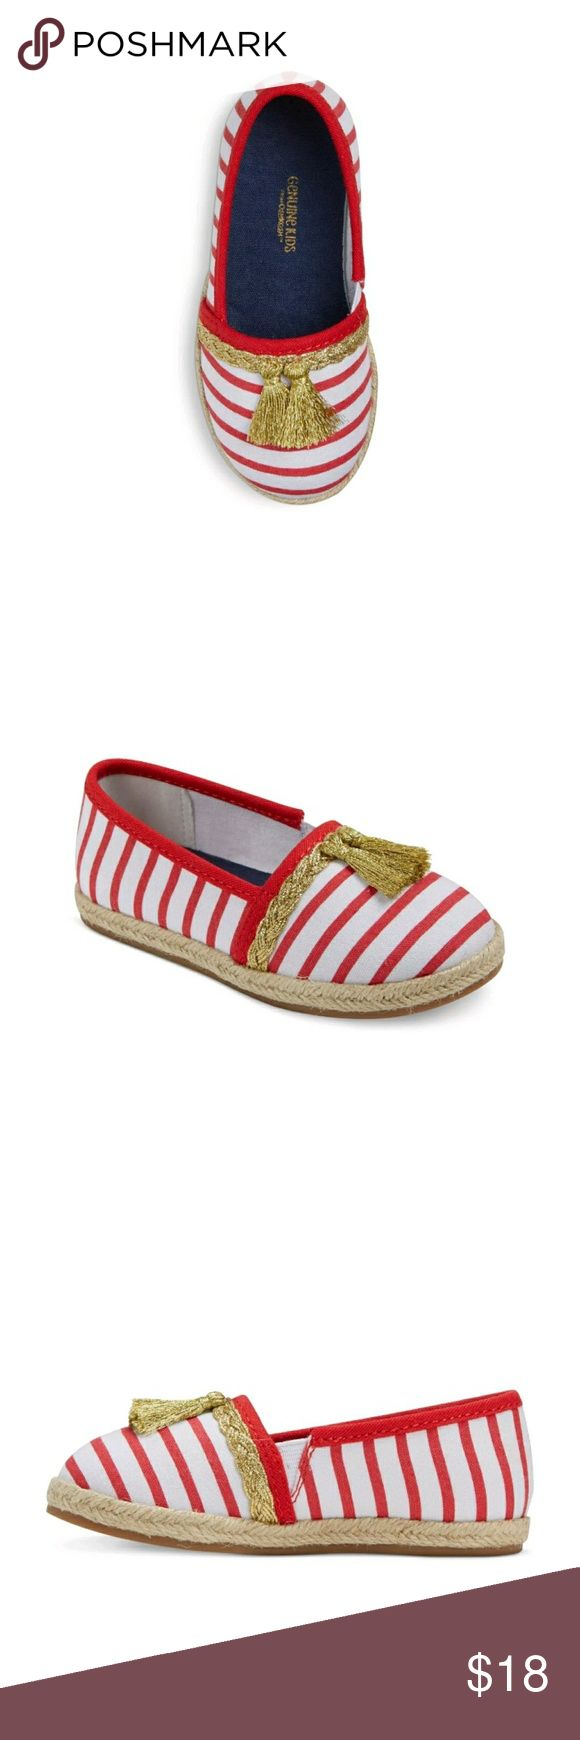 Toddler Girls Espadrilles Genuine Kids Size 11 Toddler Girls Espadrilles Genuine Kids Size 11   Fit & Style   Breathable, 100% cotton construction keeps her feet cool and comfortable  Rubber sole helps prevent slips and falls  Elastic panel on the side makes it easy for her to slip them on and off. Price is firm. Osh Kosh Shoes